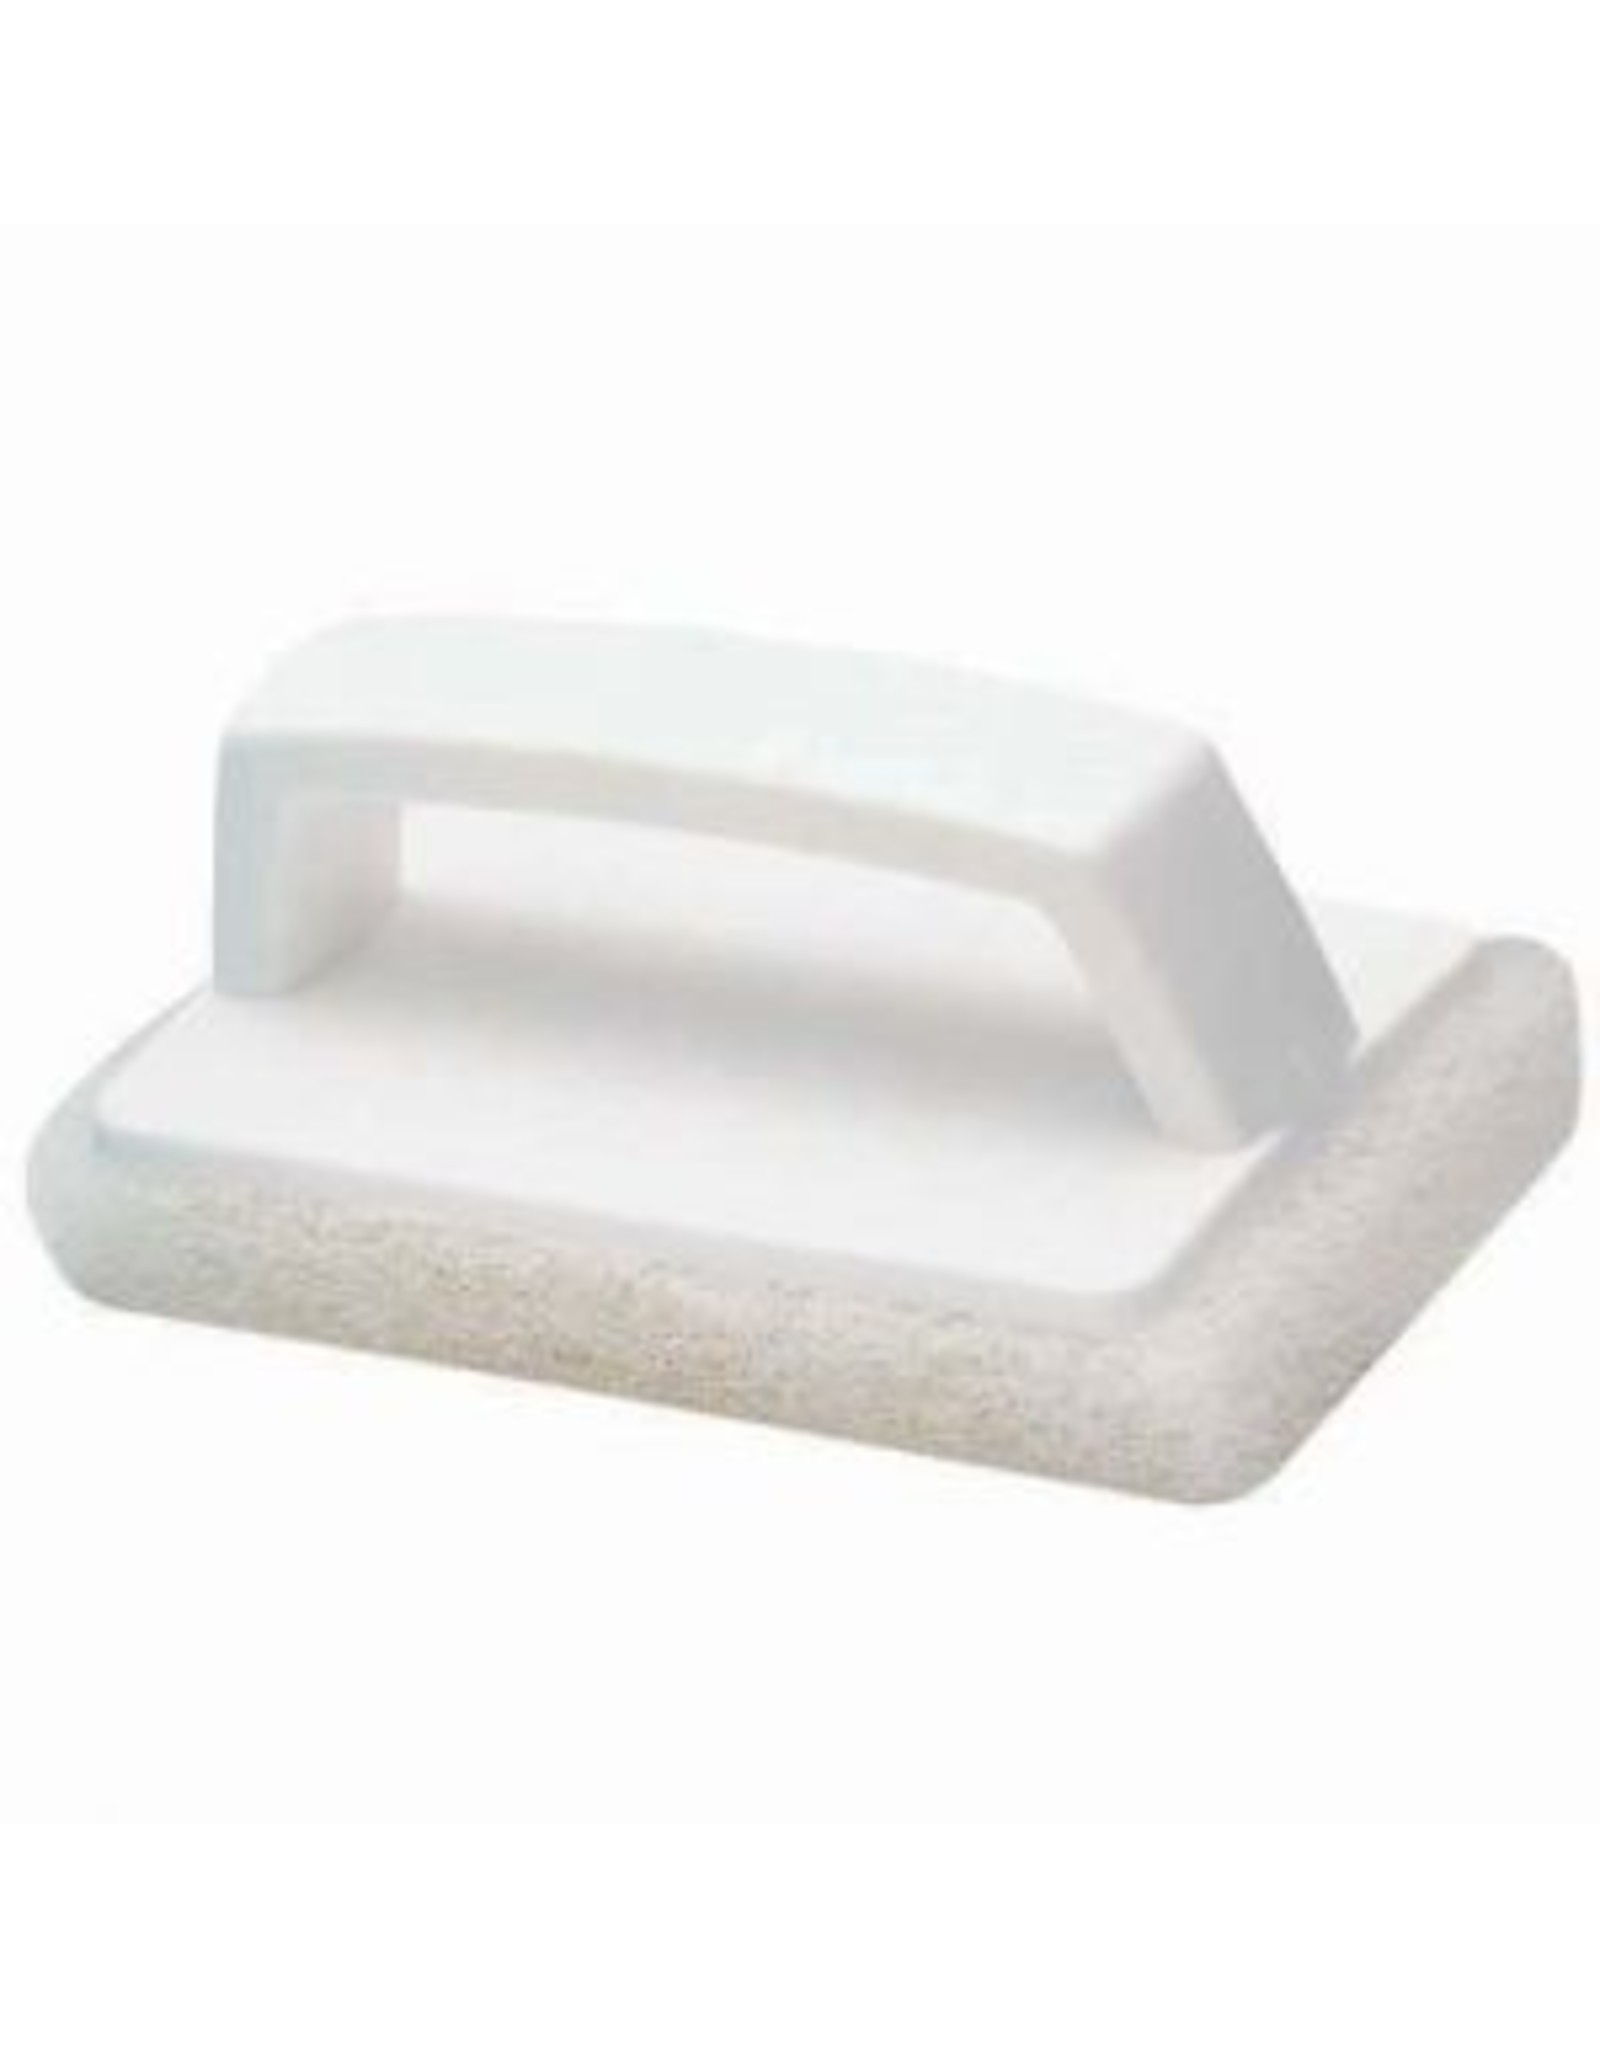 Essentials Cleaning Tub Scrubber